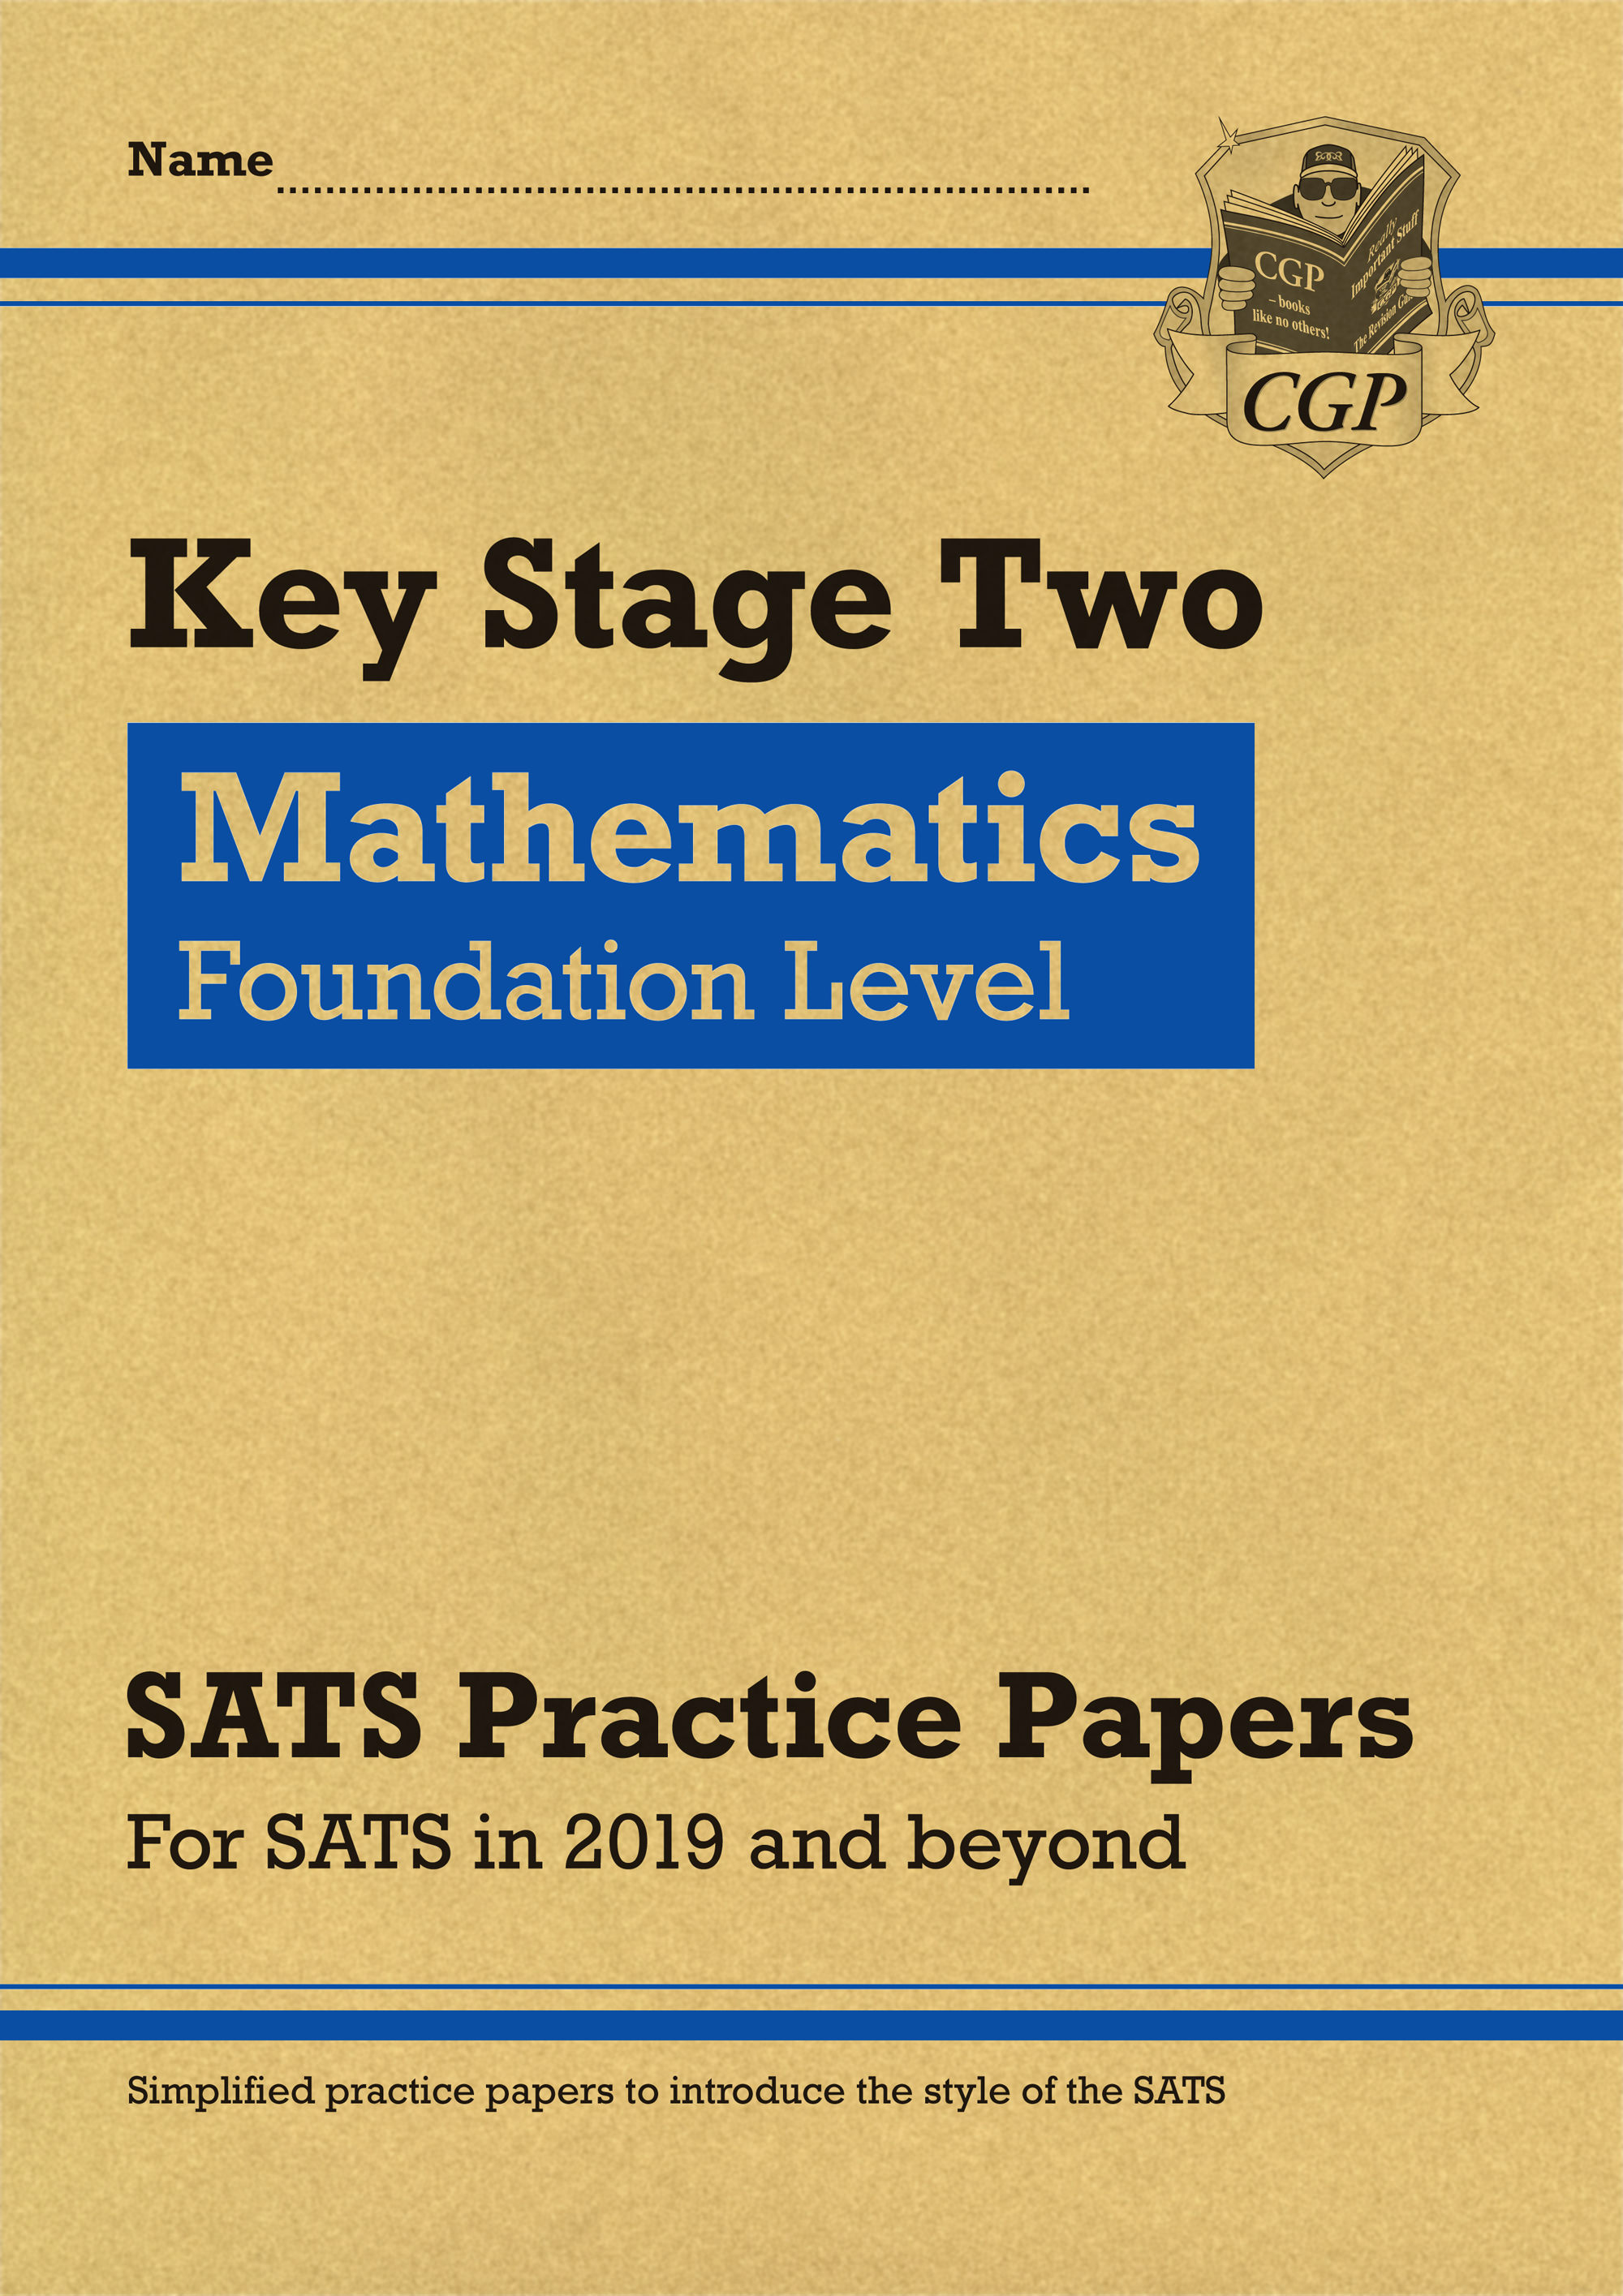 MLFP22 - New KS2 Maths Targeted SATS Practice Papers: Foundation Level (for the 2019 tests)